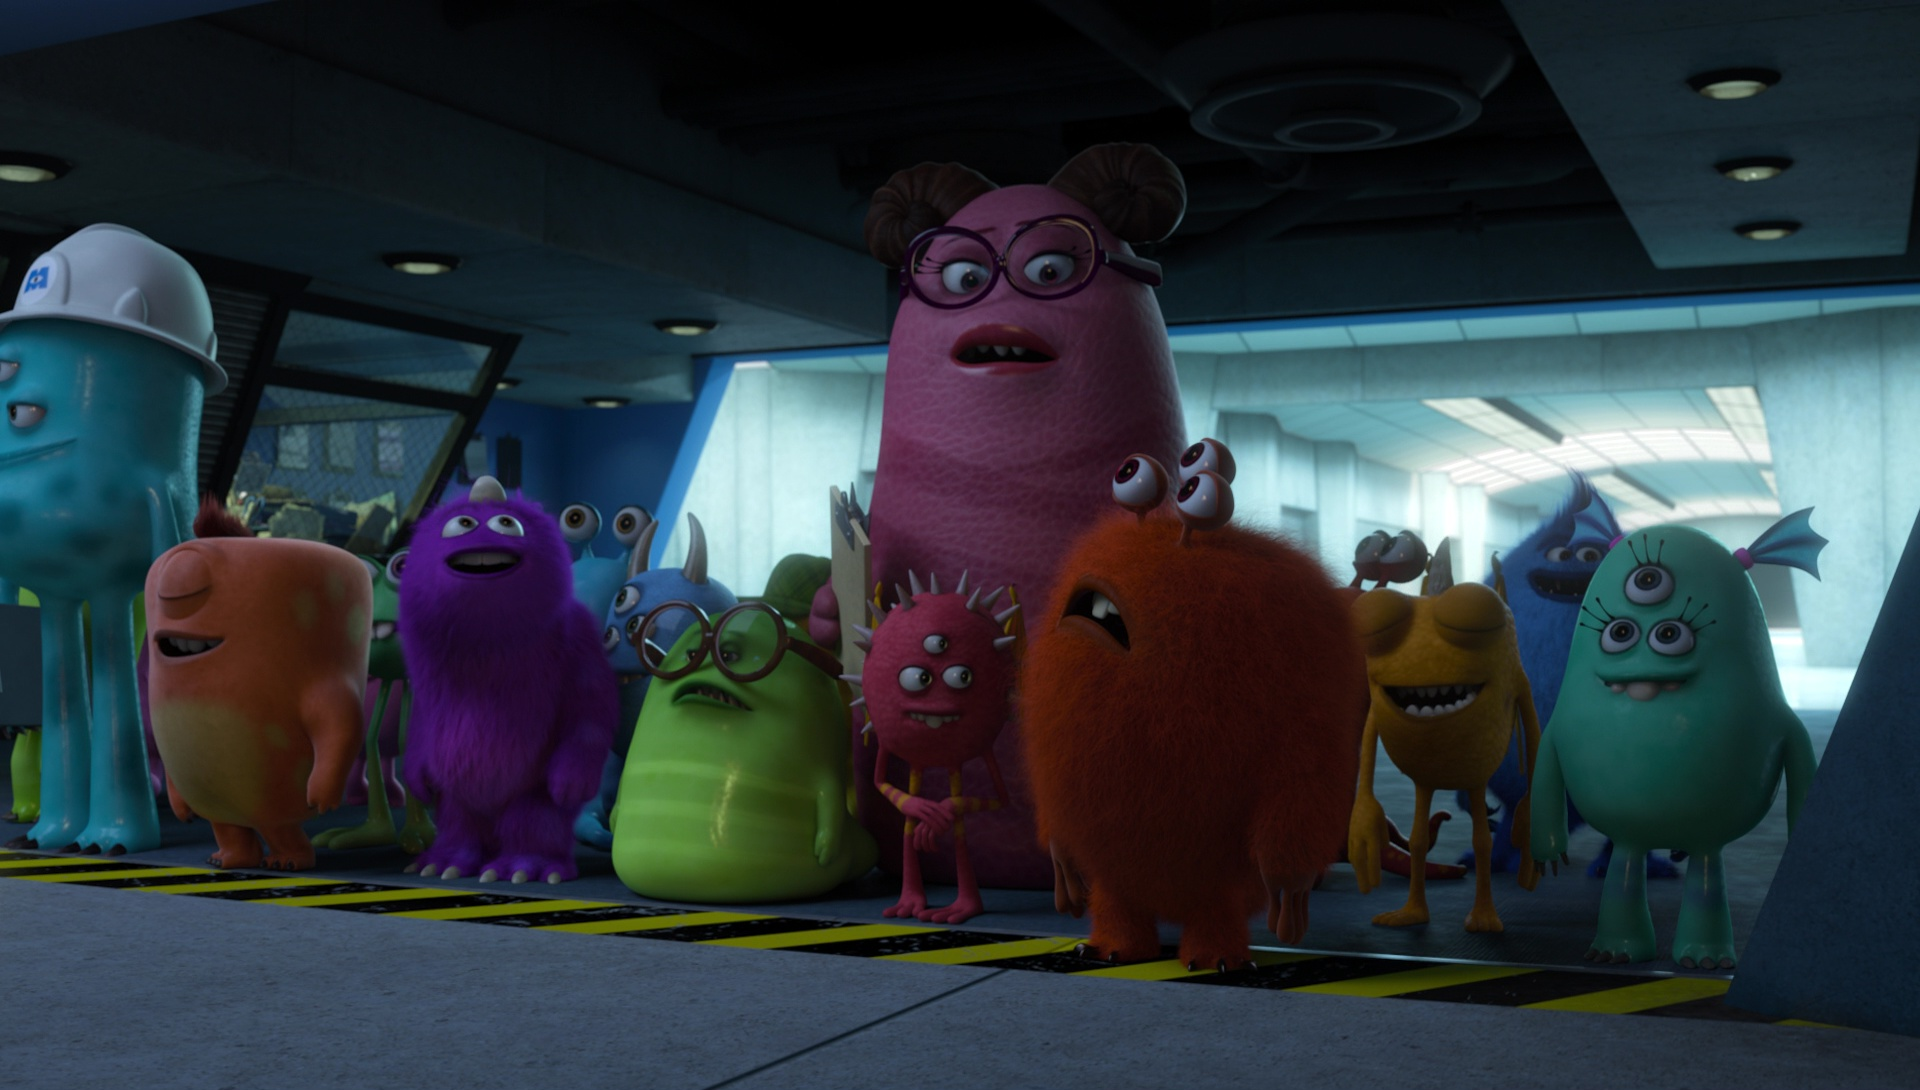 brian personnage character monstres academy monsters university